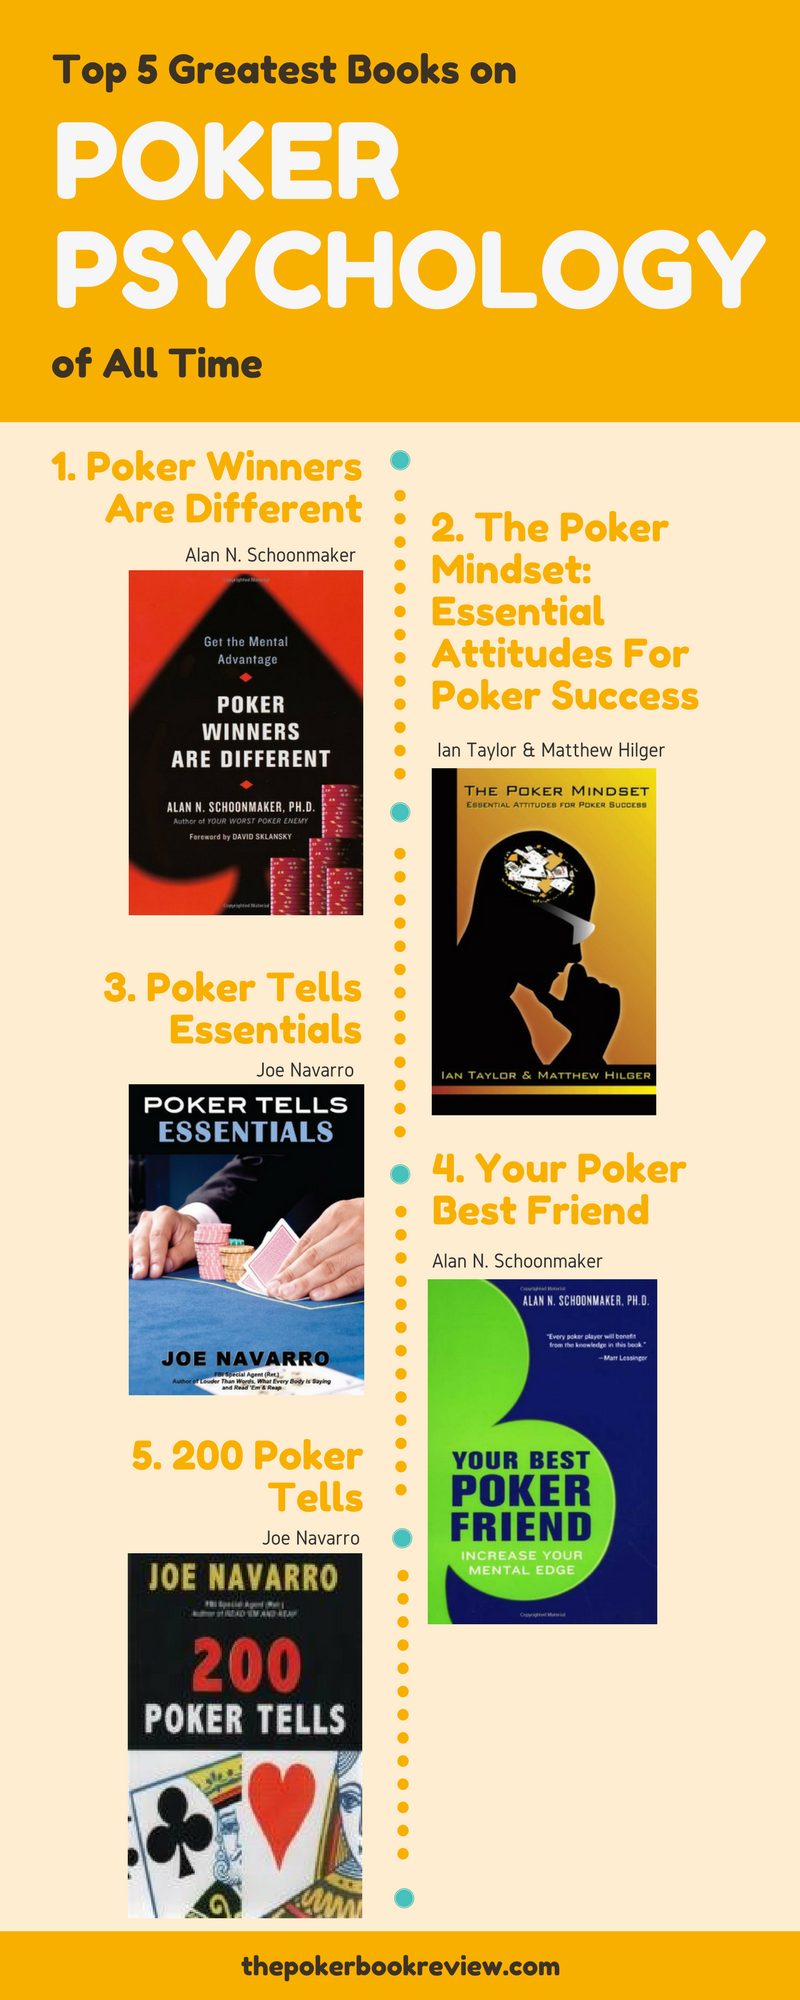 Top 5 Poker Greater Books on Poker Psychology of all Time.png